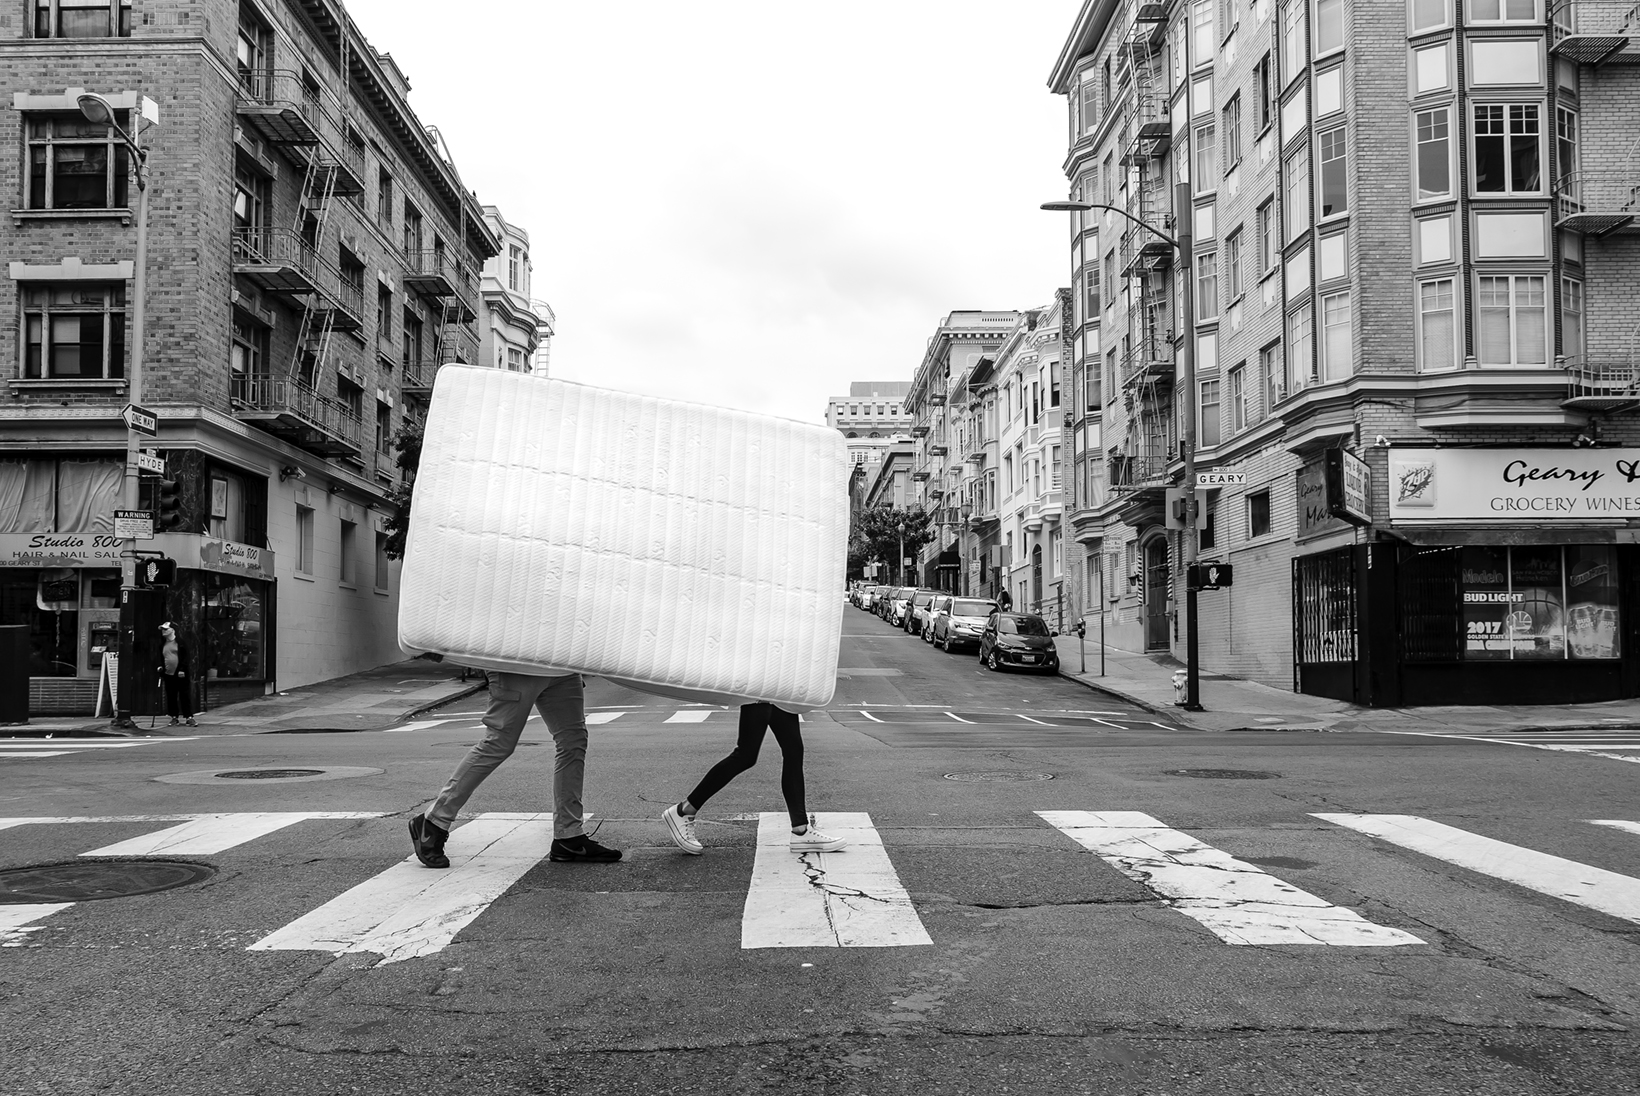 Two people, who are obstructed by the mattress they are carrying, walk in a crosswalk in a city.